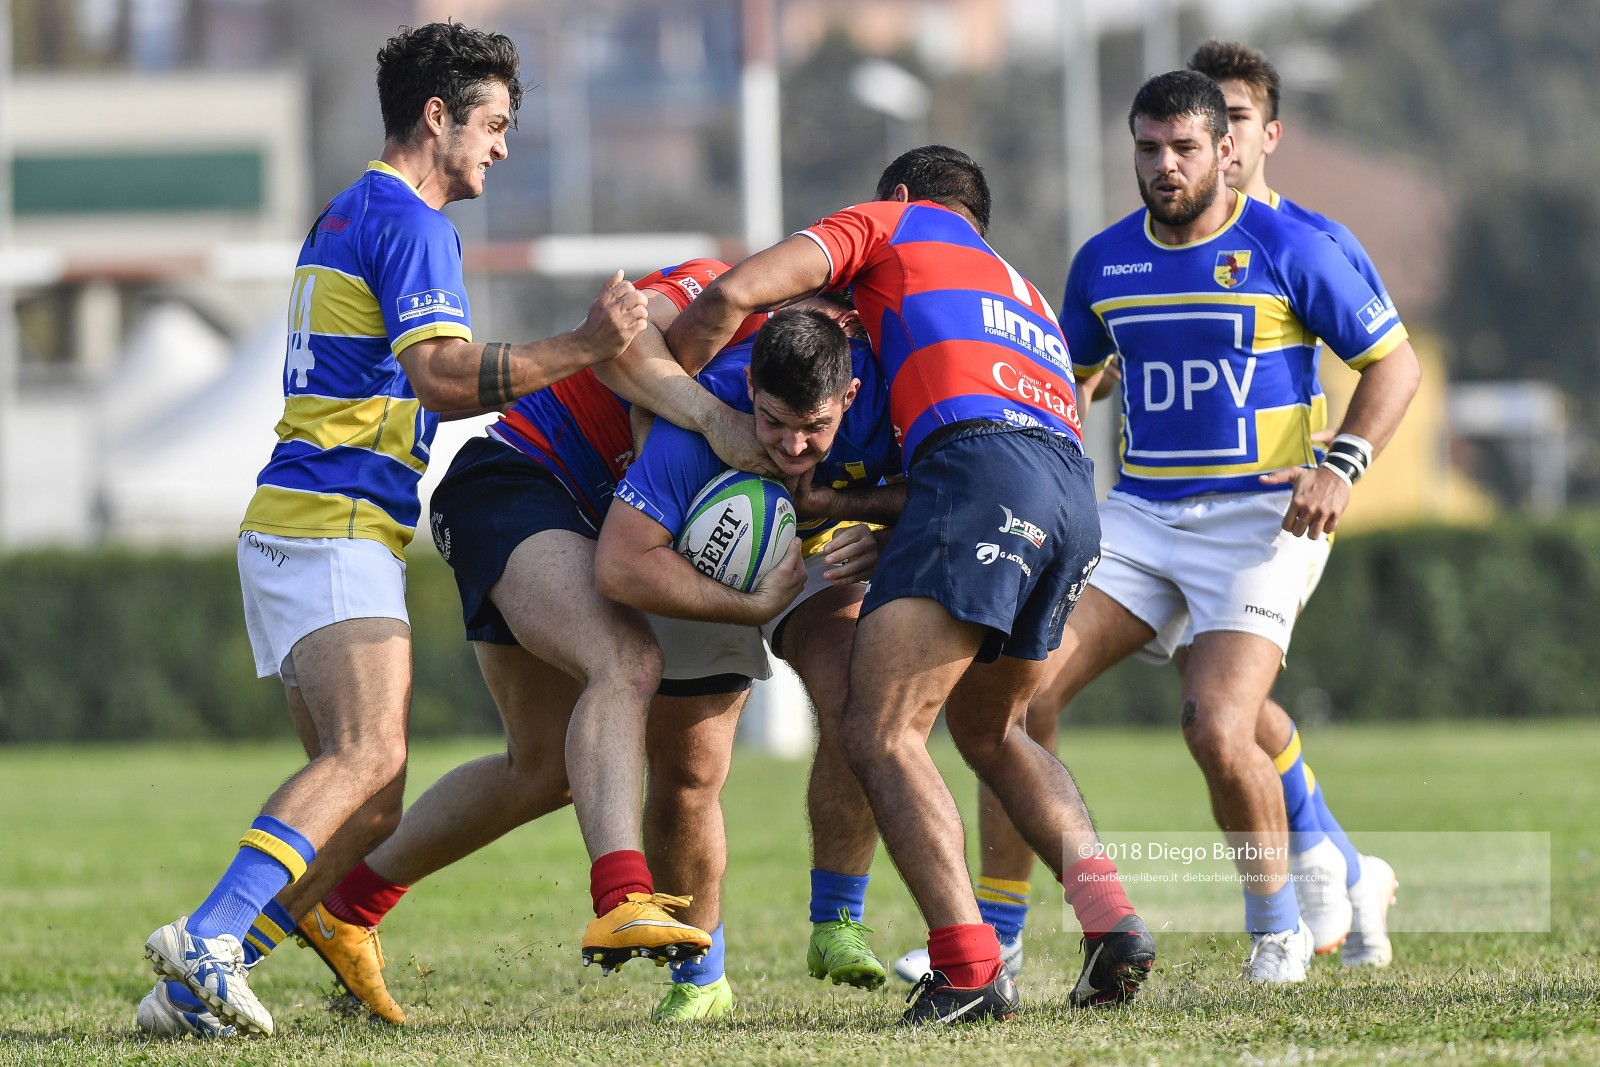 Serie A: TKGroup VII Rugby Torino - Itinera CUS Ad Maiora Rugby 1951